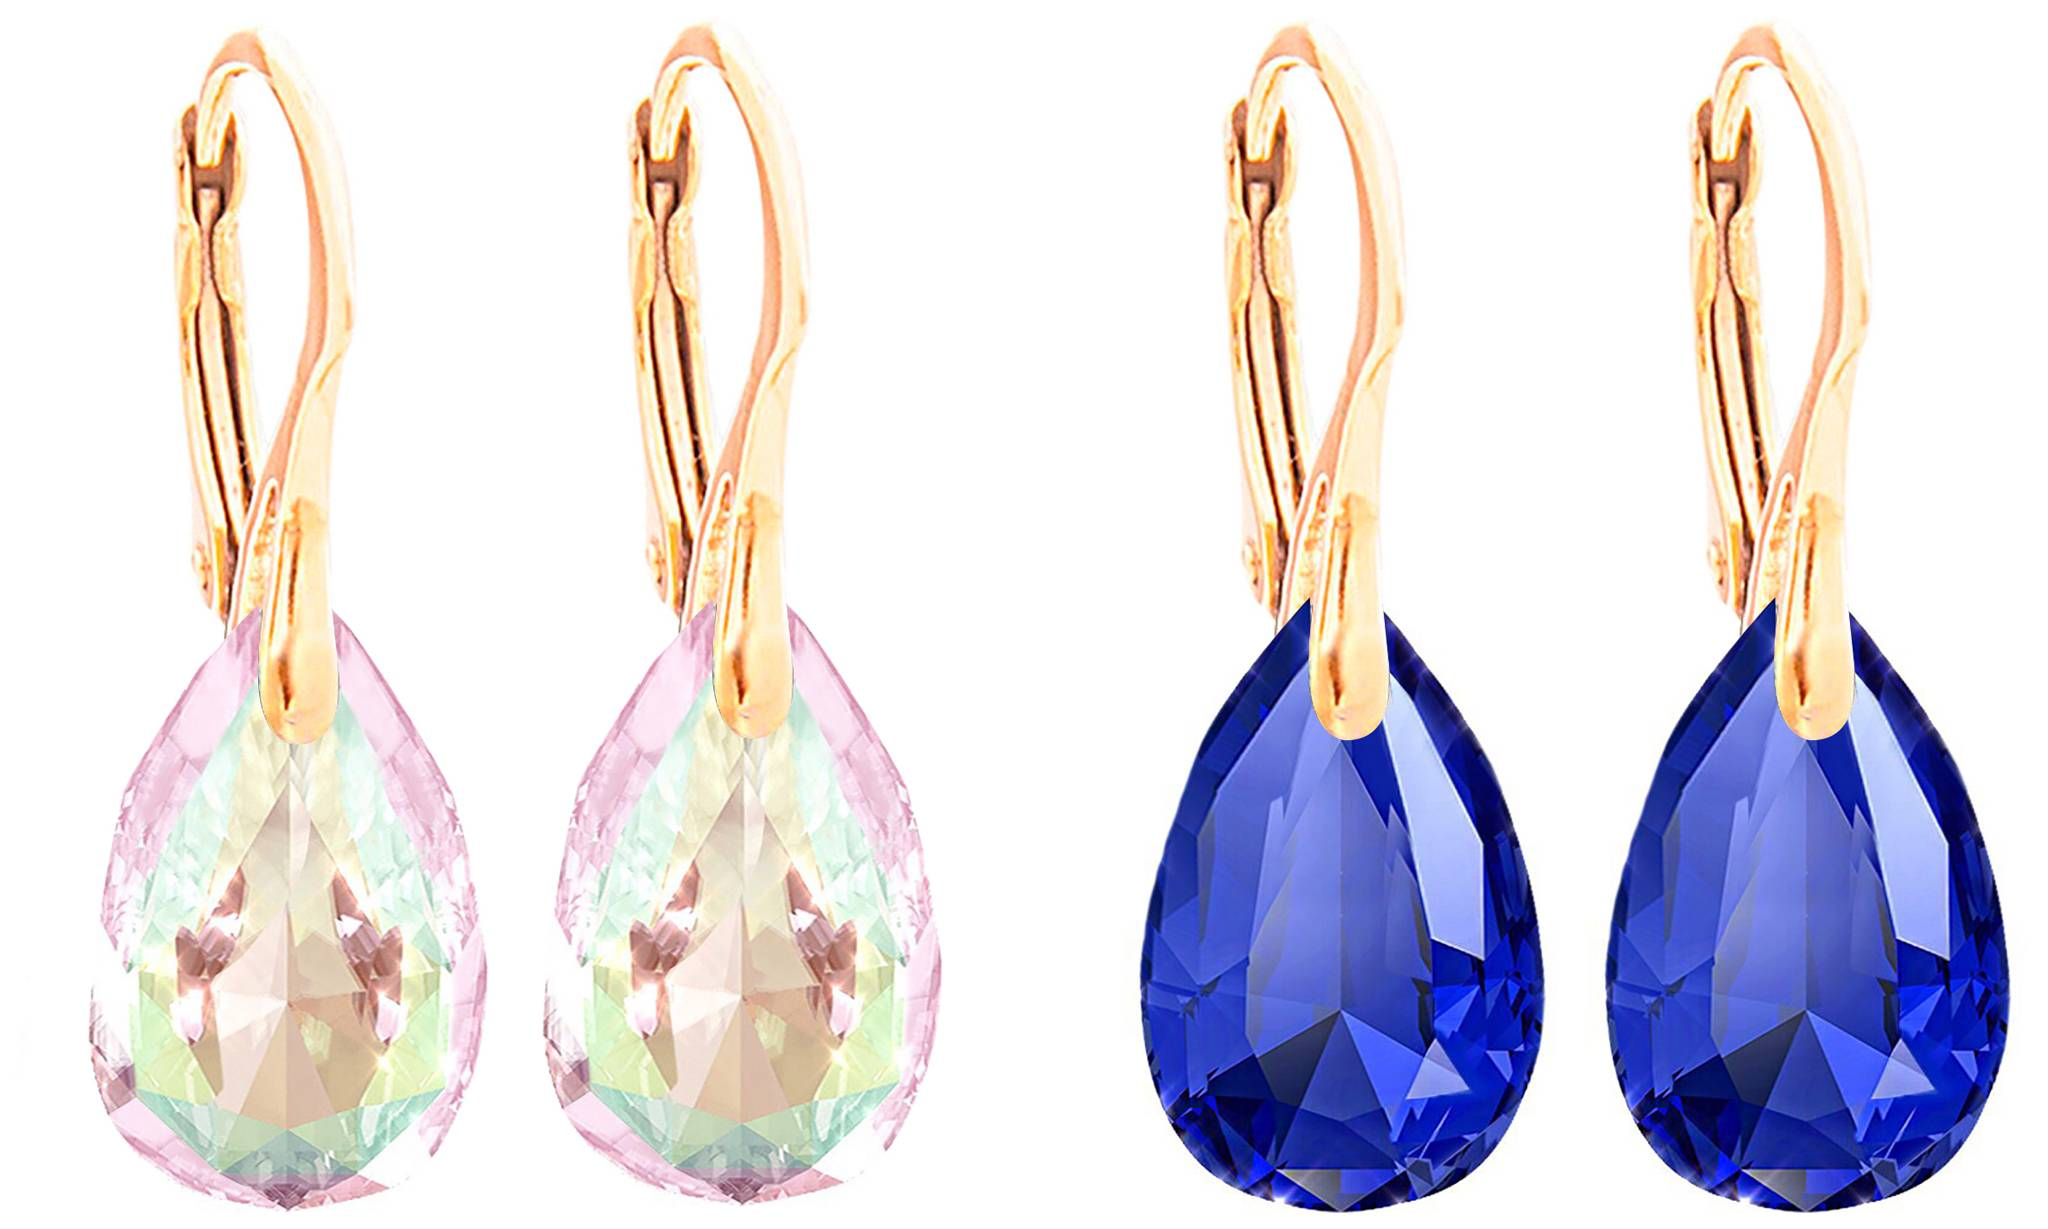 Ah! Jewellery® Ah! Jewellery® Ah! Jewellery Earrings with Crystals from Swarovski®: Two - Majestic Blue and Aurore Boreale